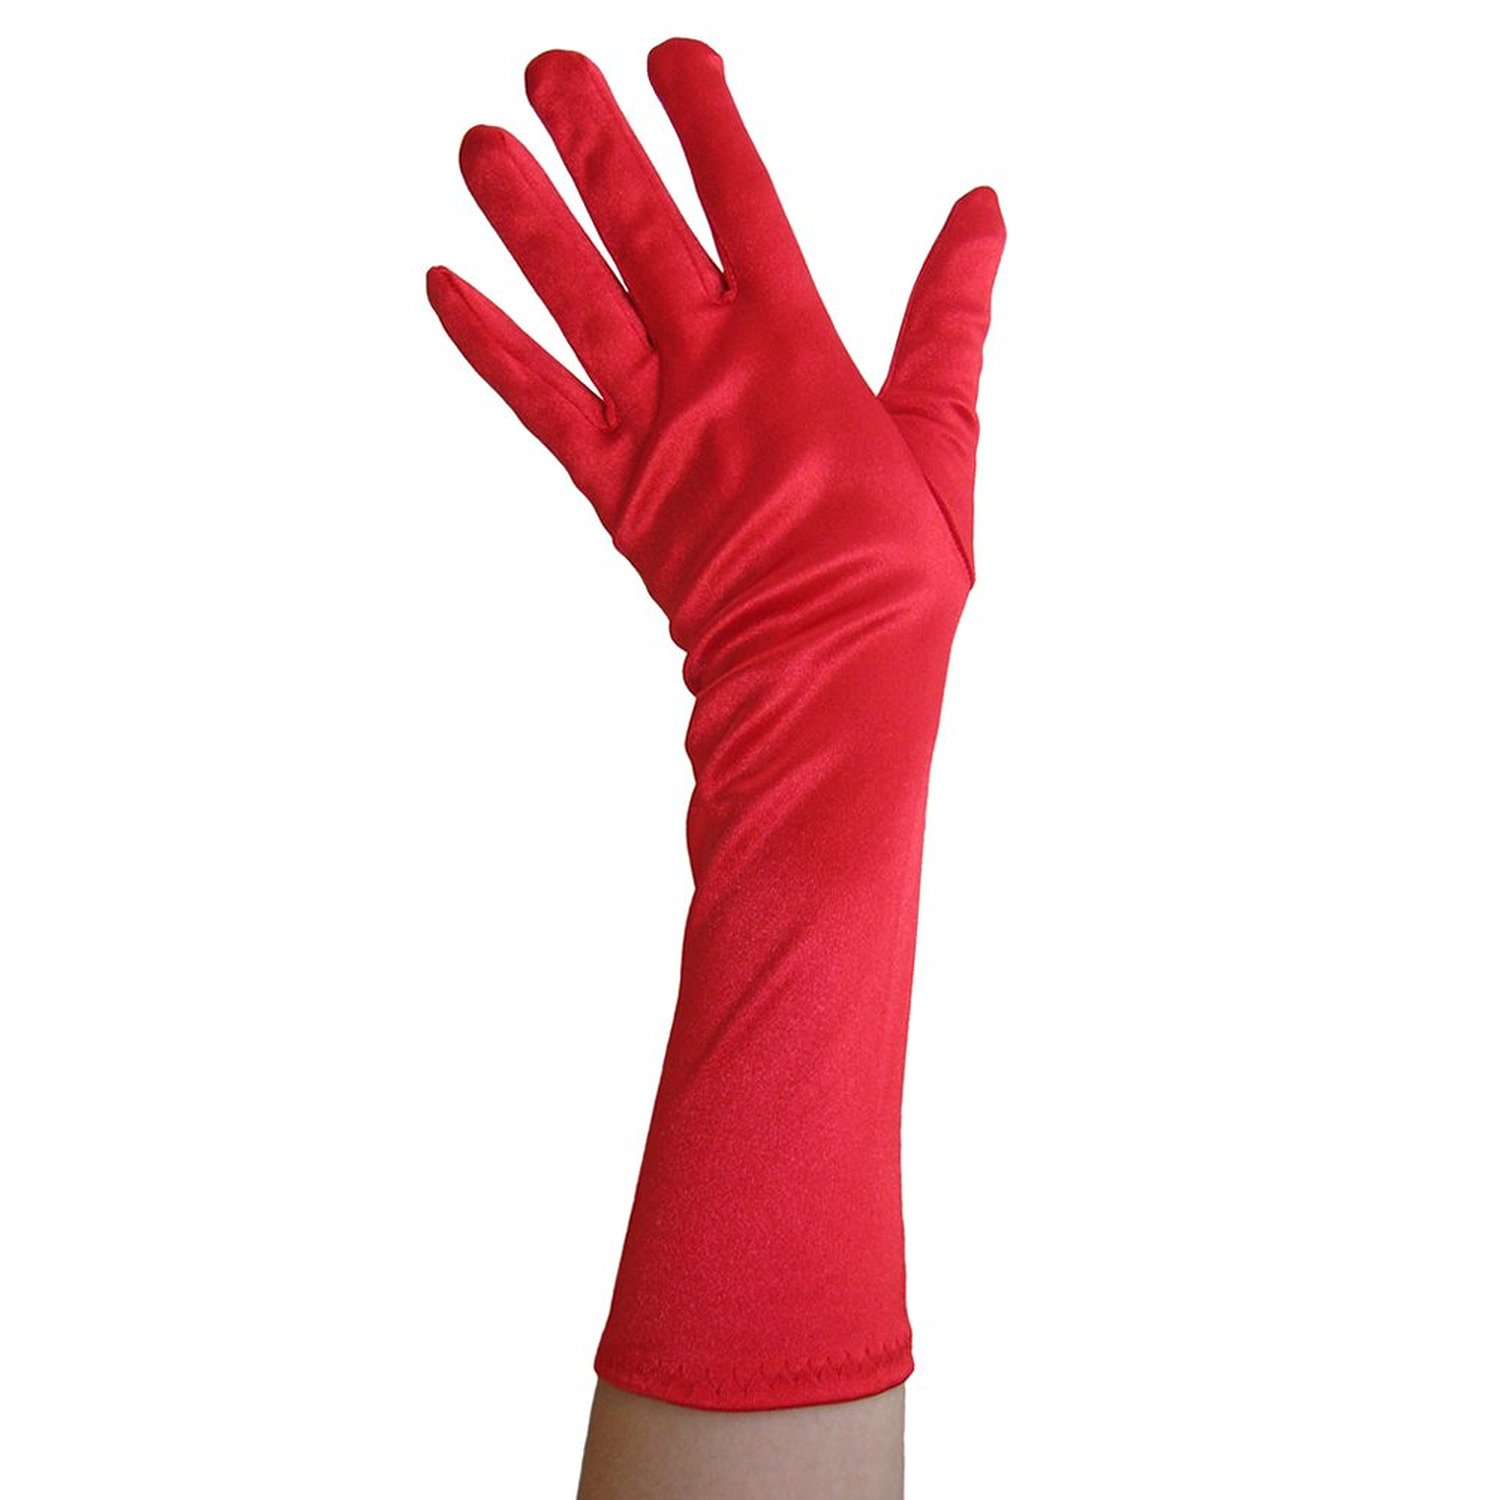 Fingerless gloves amazon - Amazon Com Red Satin Gloves Elbow Length Formal Wedding Theatrical Costume Party Clothing